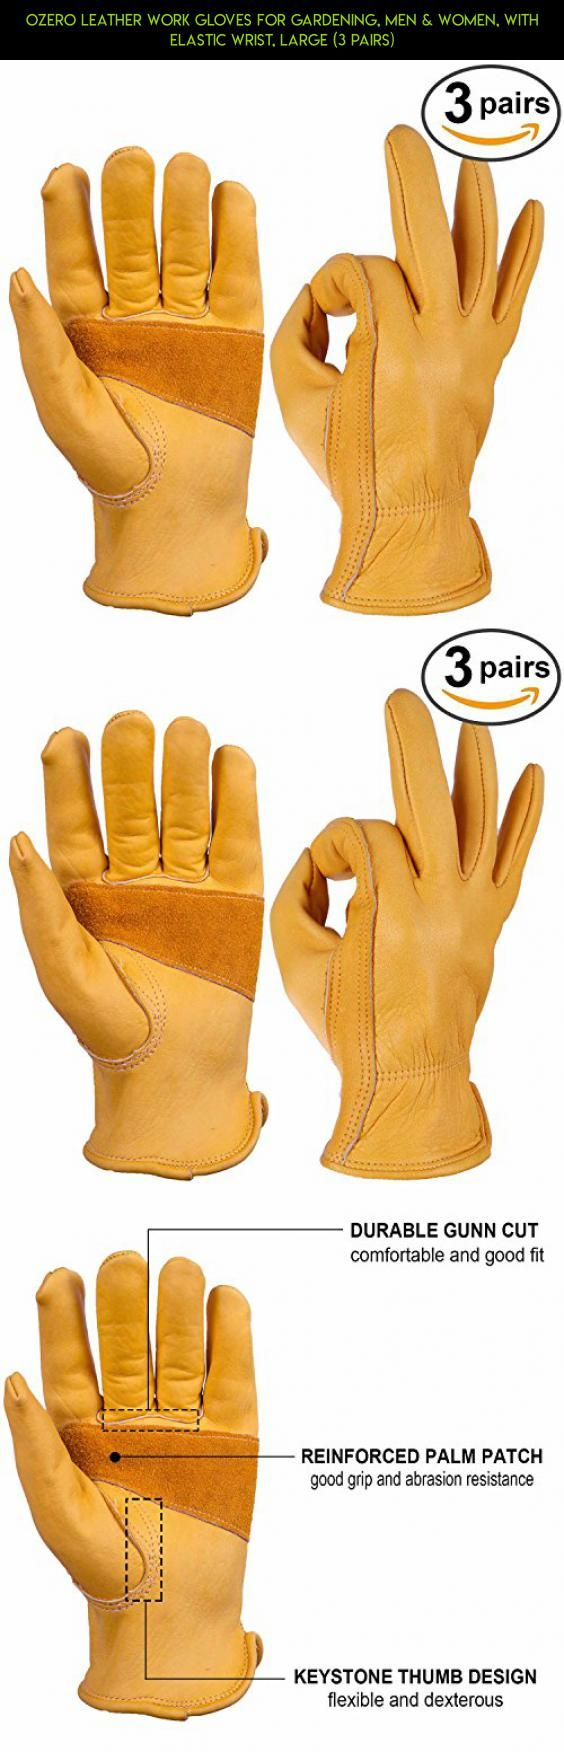 Reinforced Leather Work Gloves - Ozero leather work gloves for gardening men women with elastic wrist large